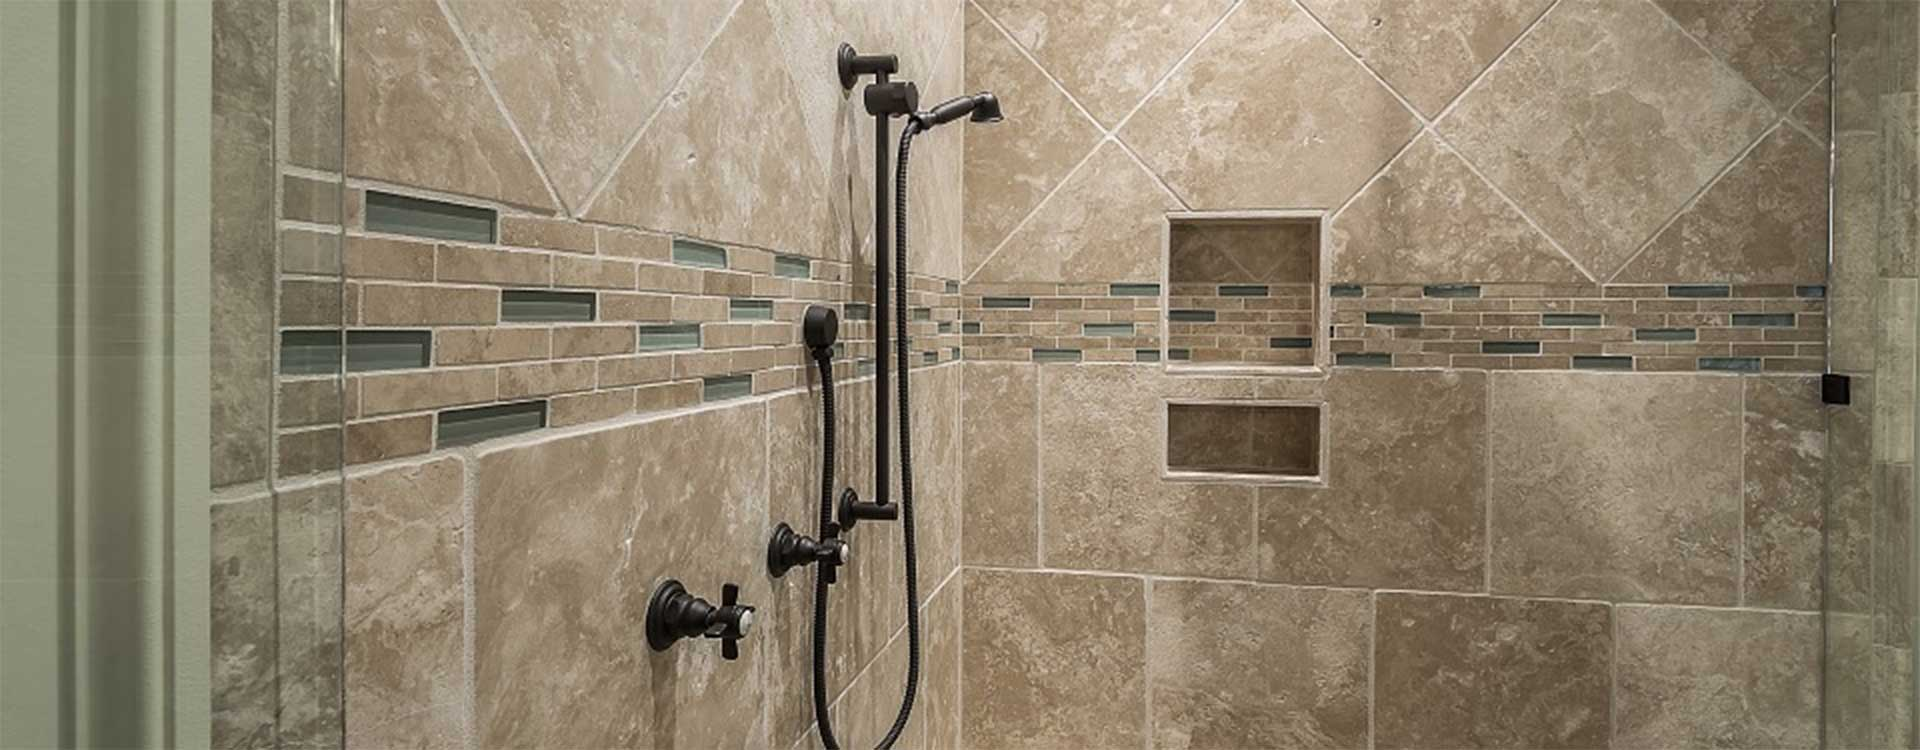 grout sealer to use in a shower